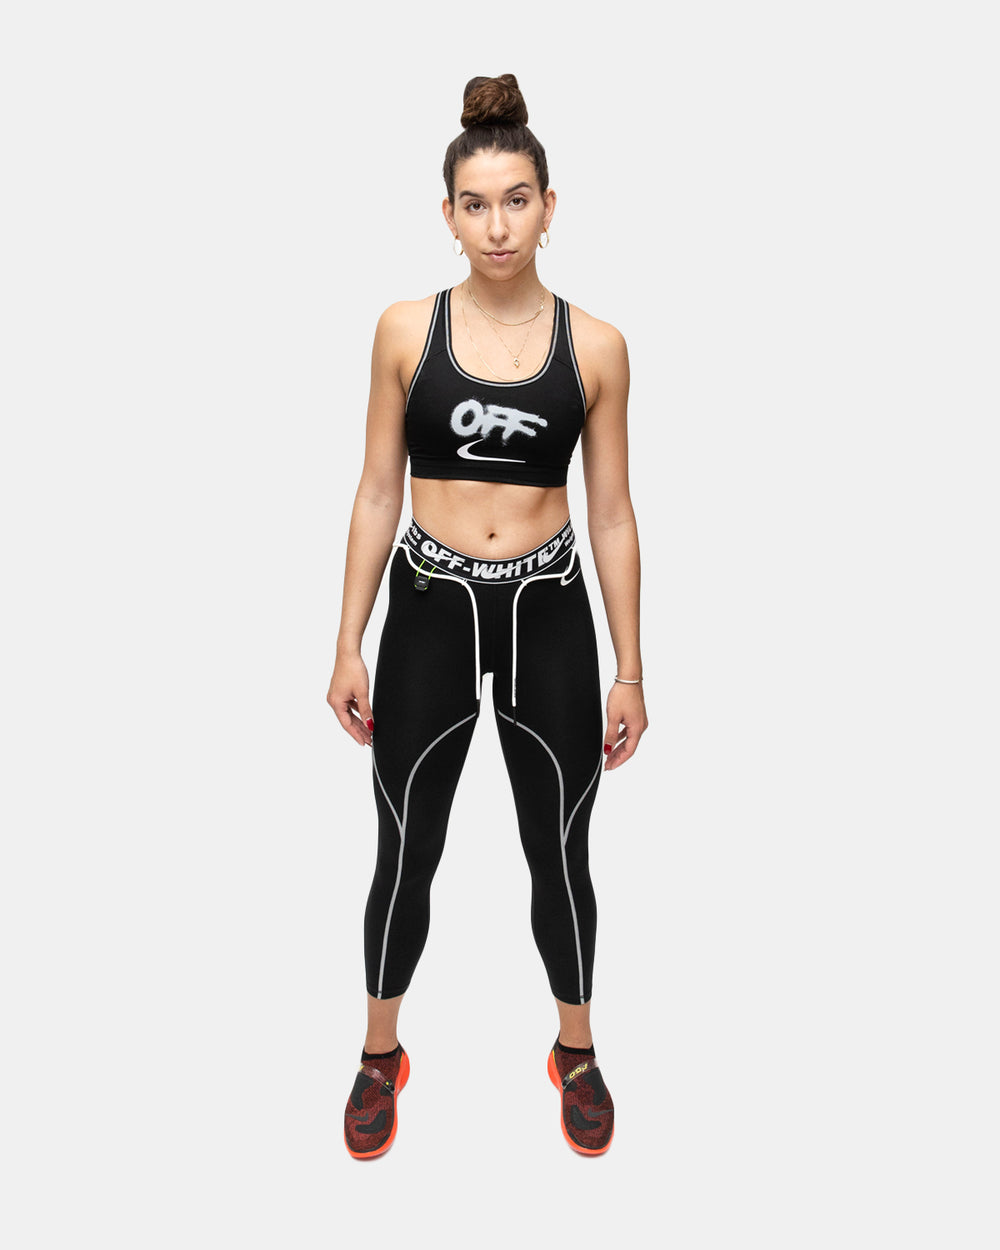 Nike - Nike x Off-White Women's Pro Tights (Black)